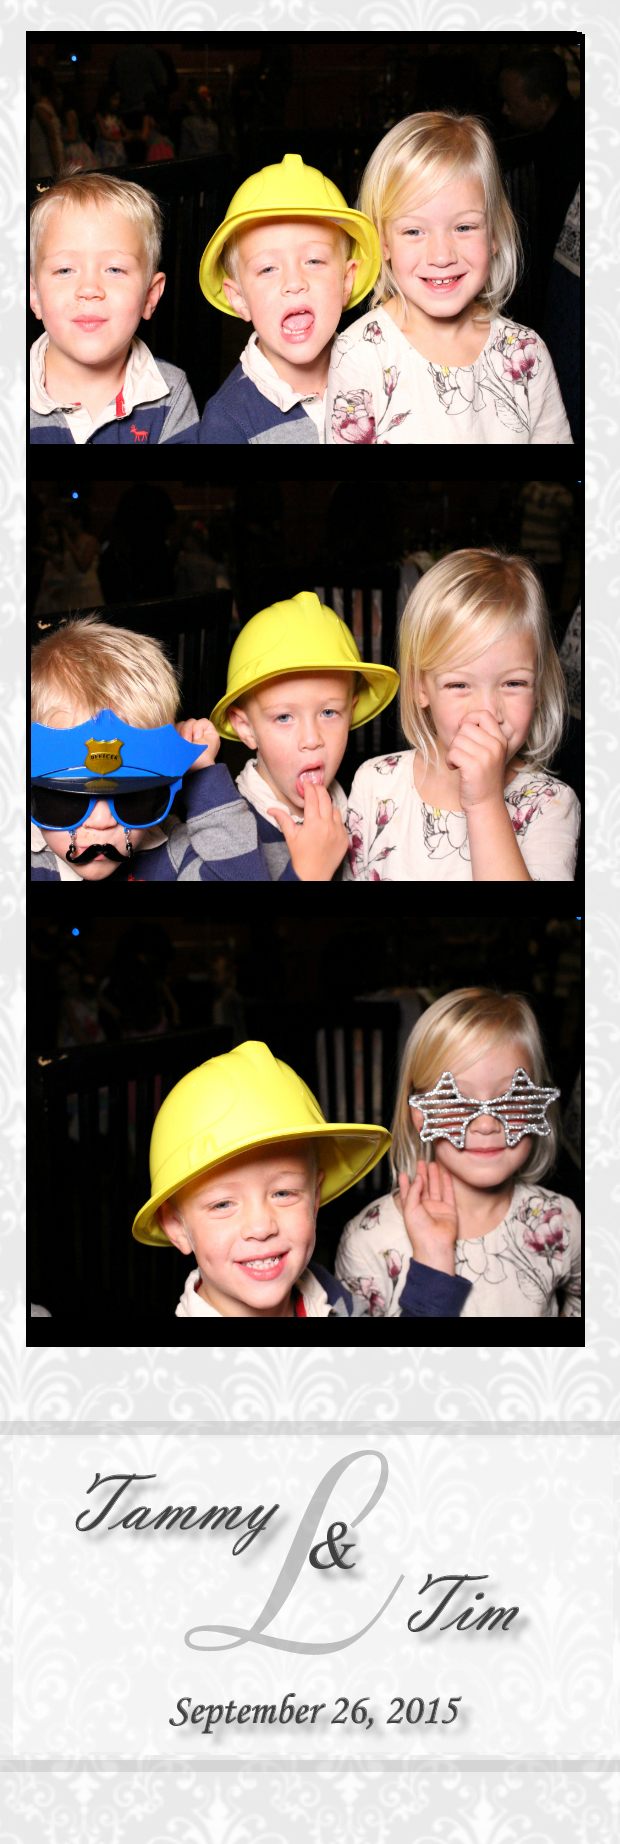 Guest House Events Photo Booth Strips T&T (17).jpg